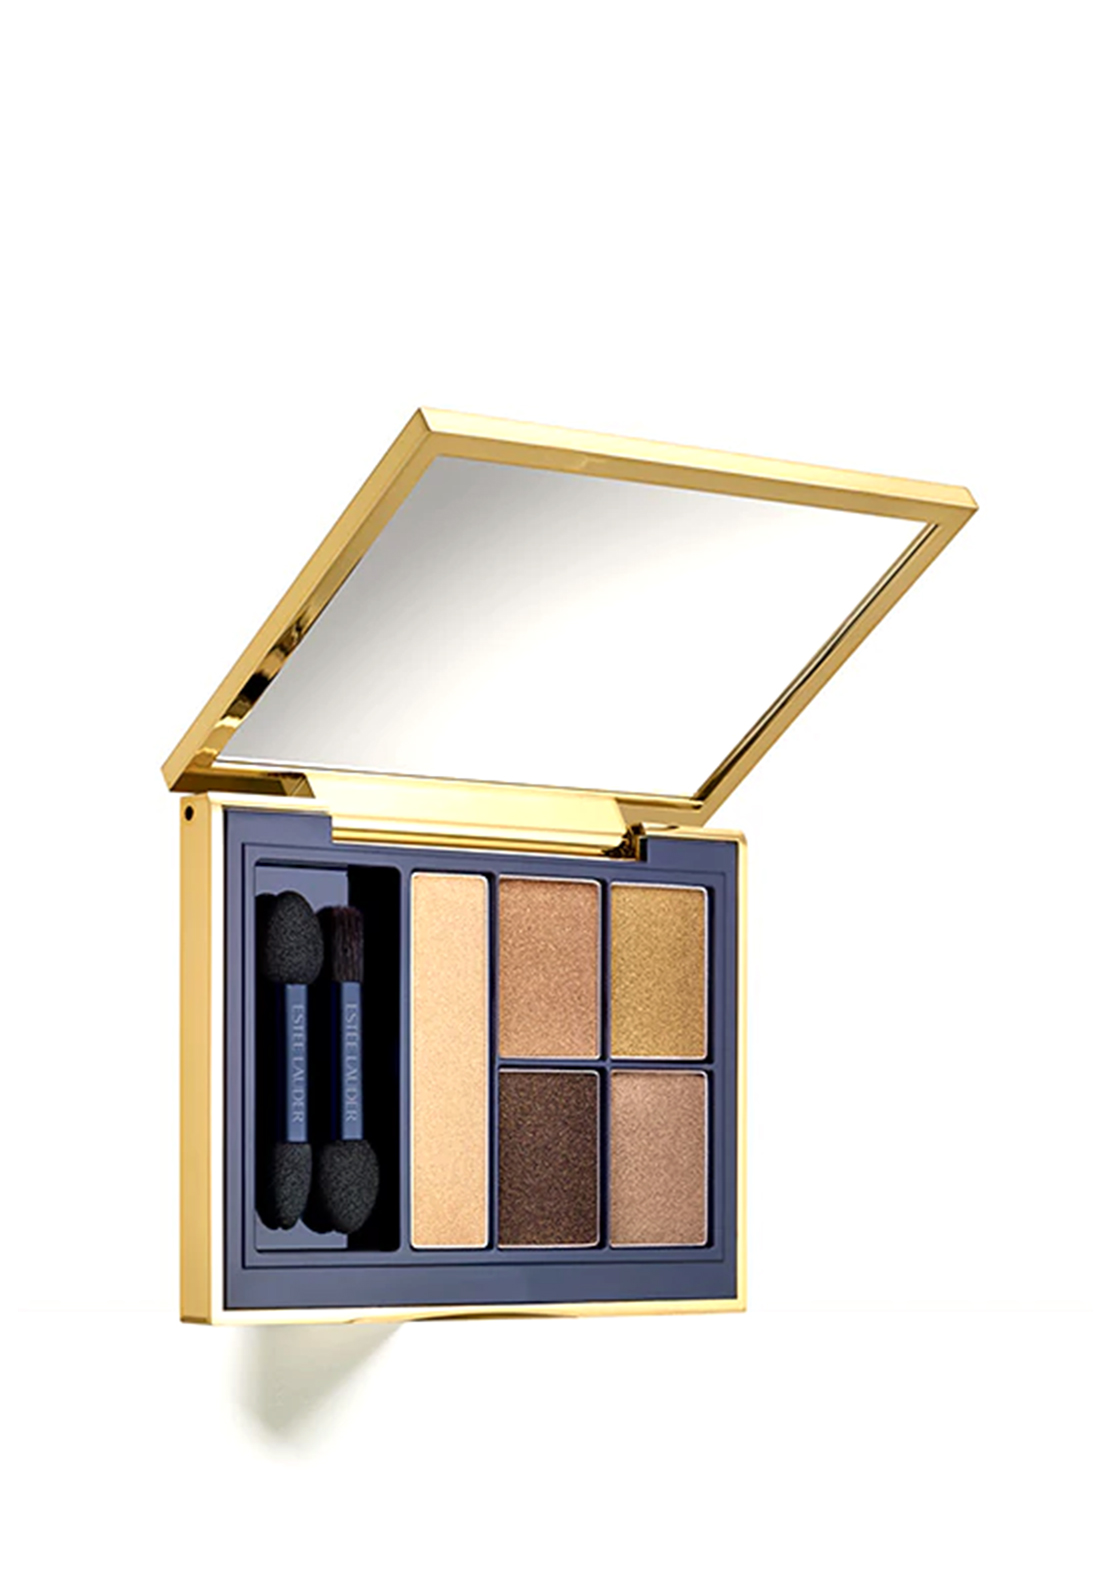 Estee Lauder Pure Colour Envy Eyeshadow Palette, Rebel Metal